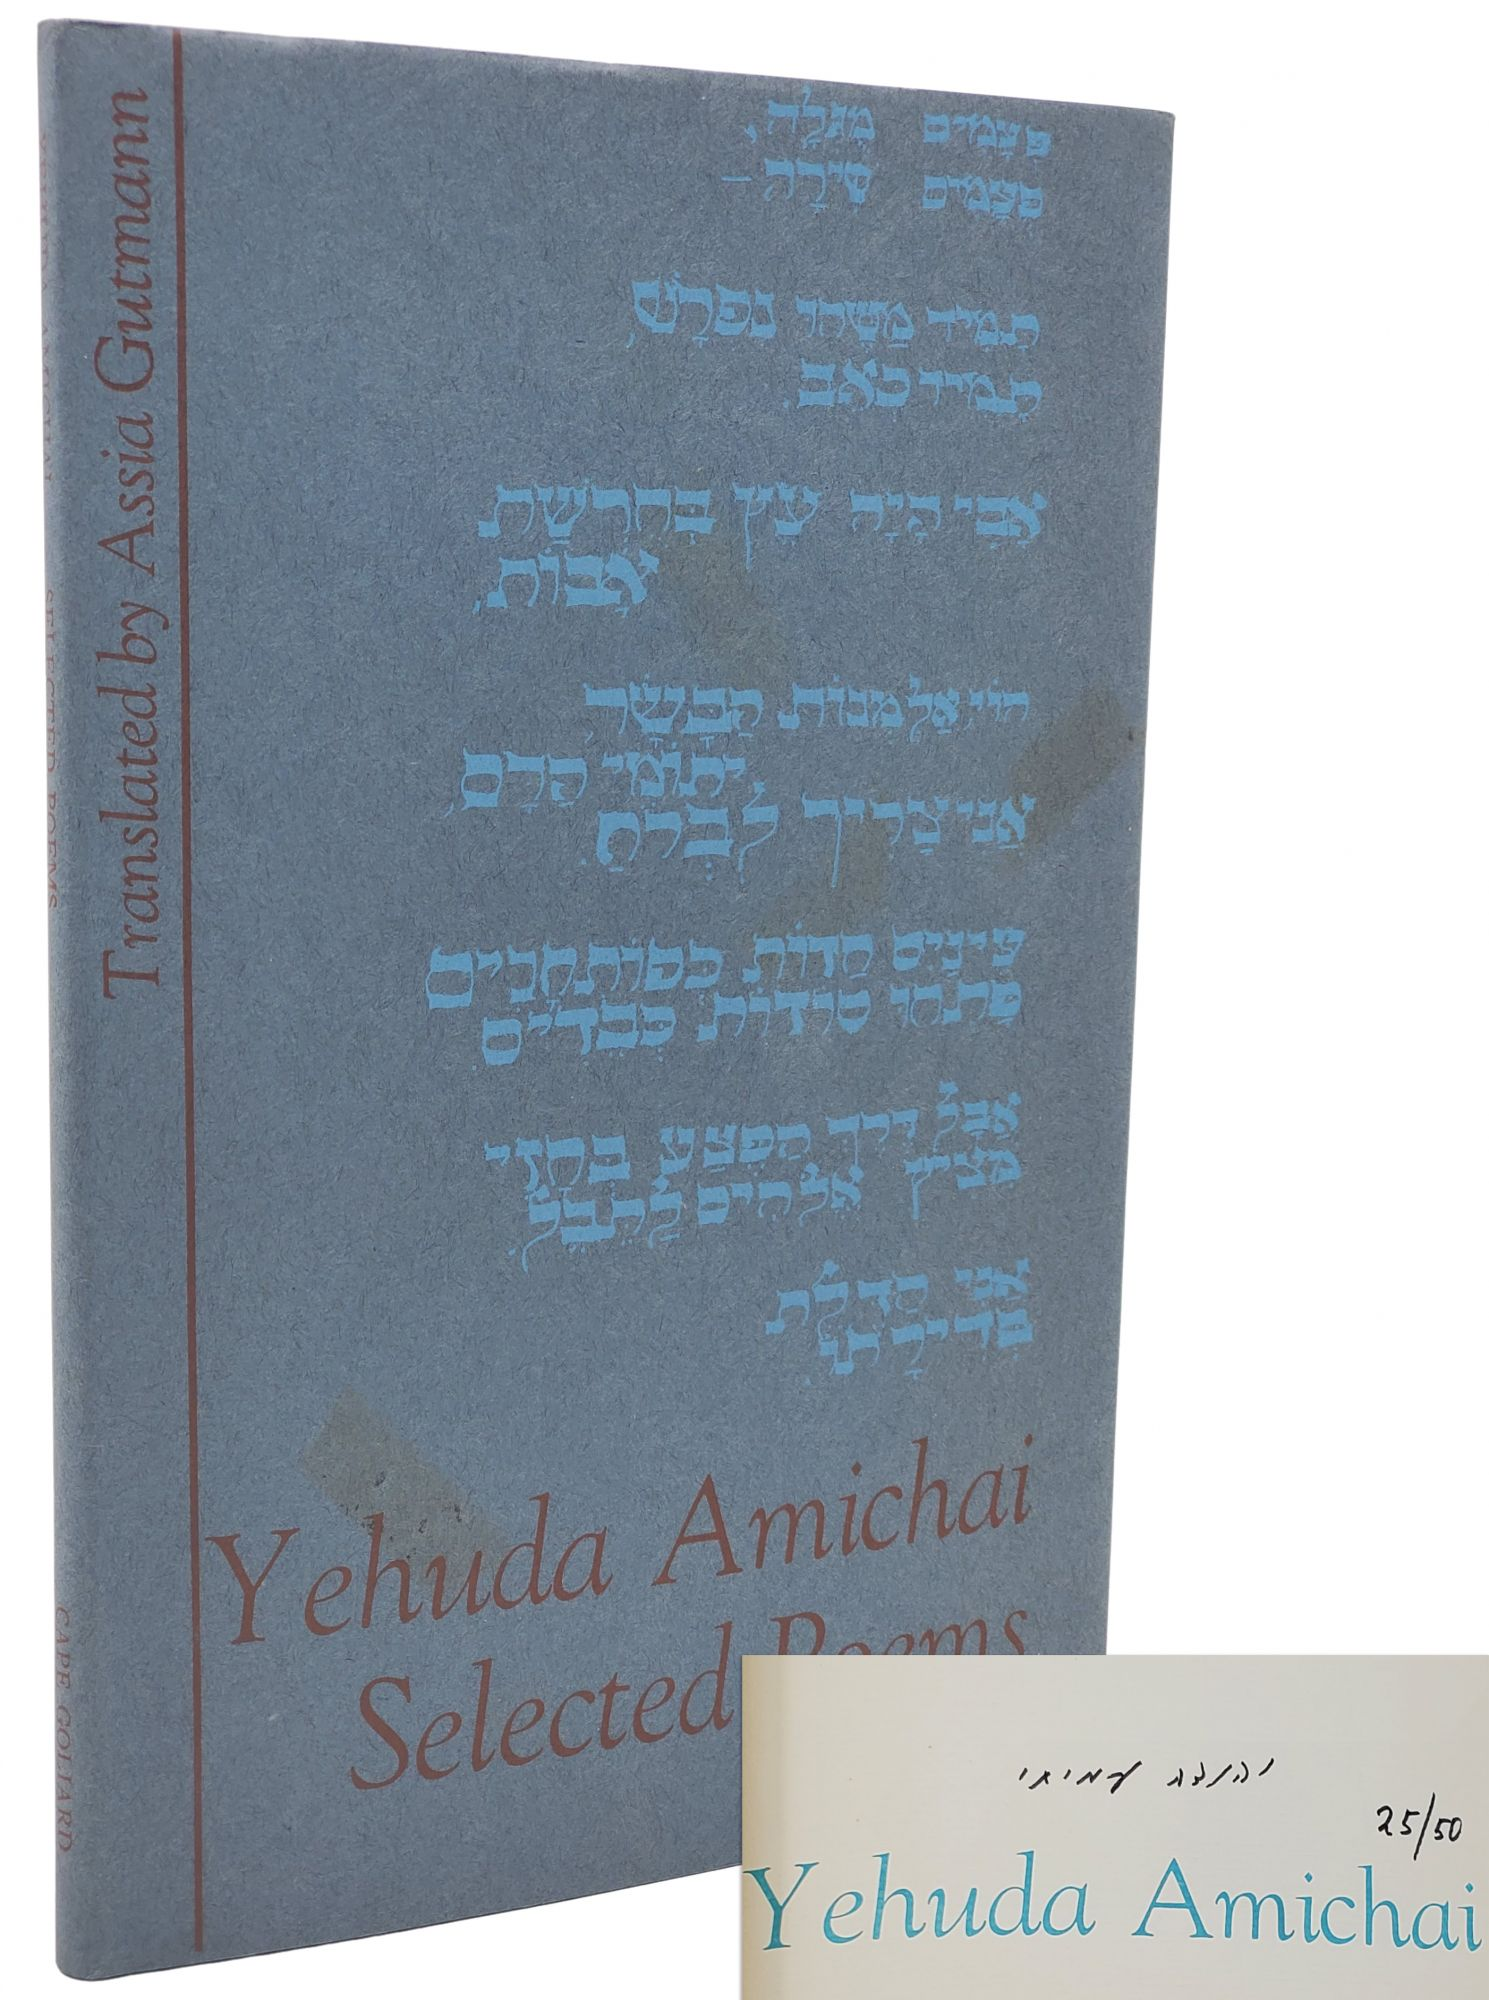 SELECTED POEMS. Translated by Assia Gutmann. Yehuda Amichai.